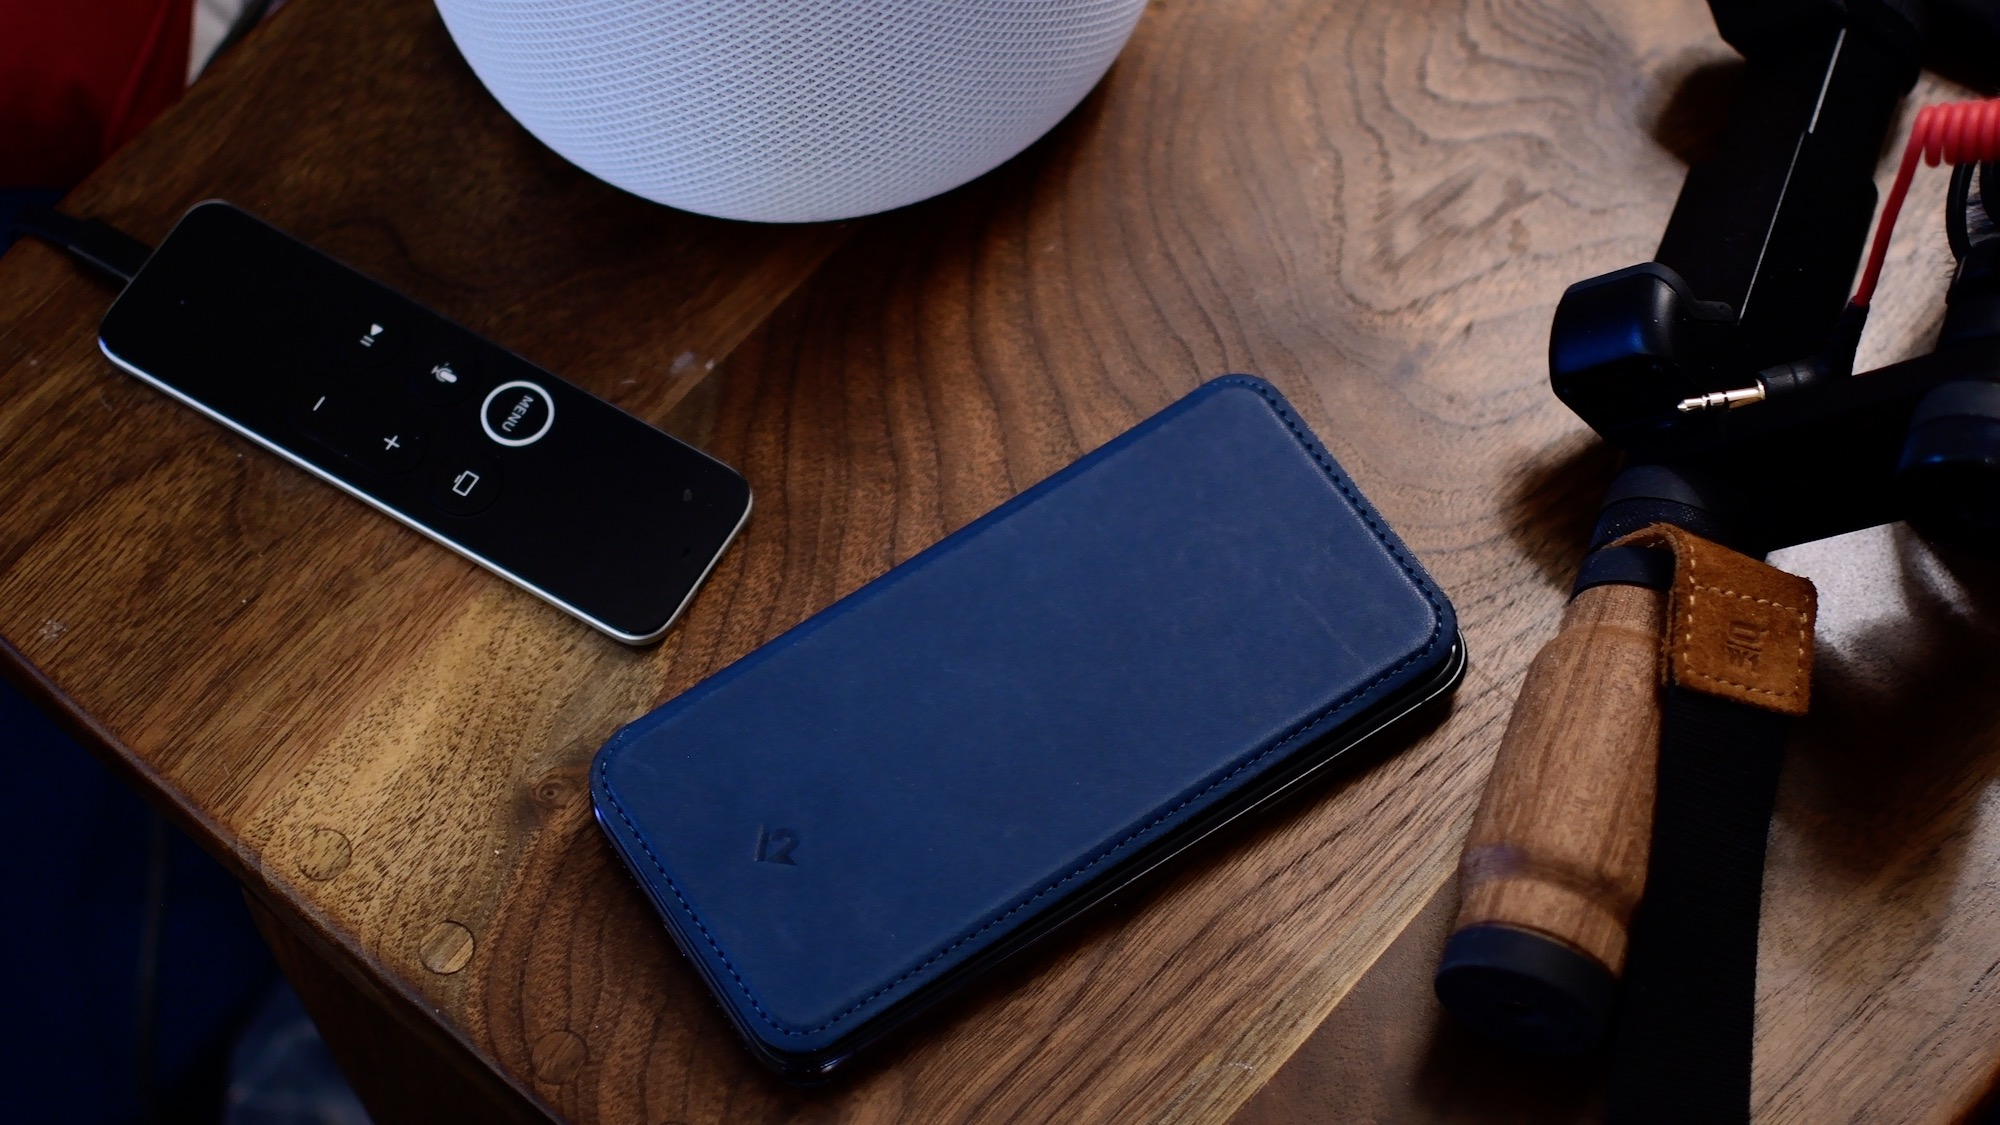 """Override Siri when iPhone is Facedown: Siri is sometimes the simplest way to use your iPhone hands-free. But the smart assistant stops listening for the """"Hey Siri"""" hot phrase when you lie the handset using its face down. In this guide, we're going to teach you how to allow Siri when the iPhone is face down or covered."""